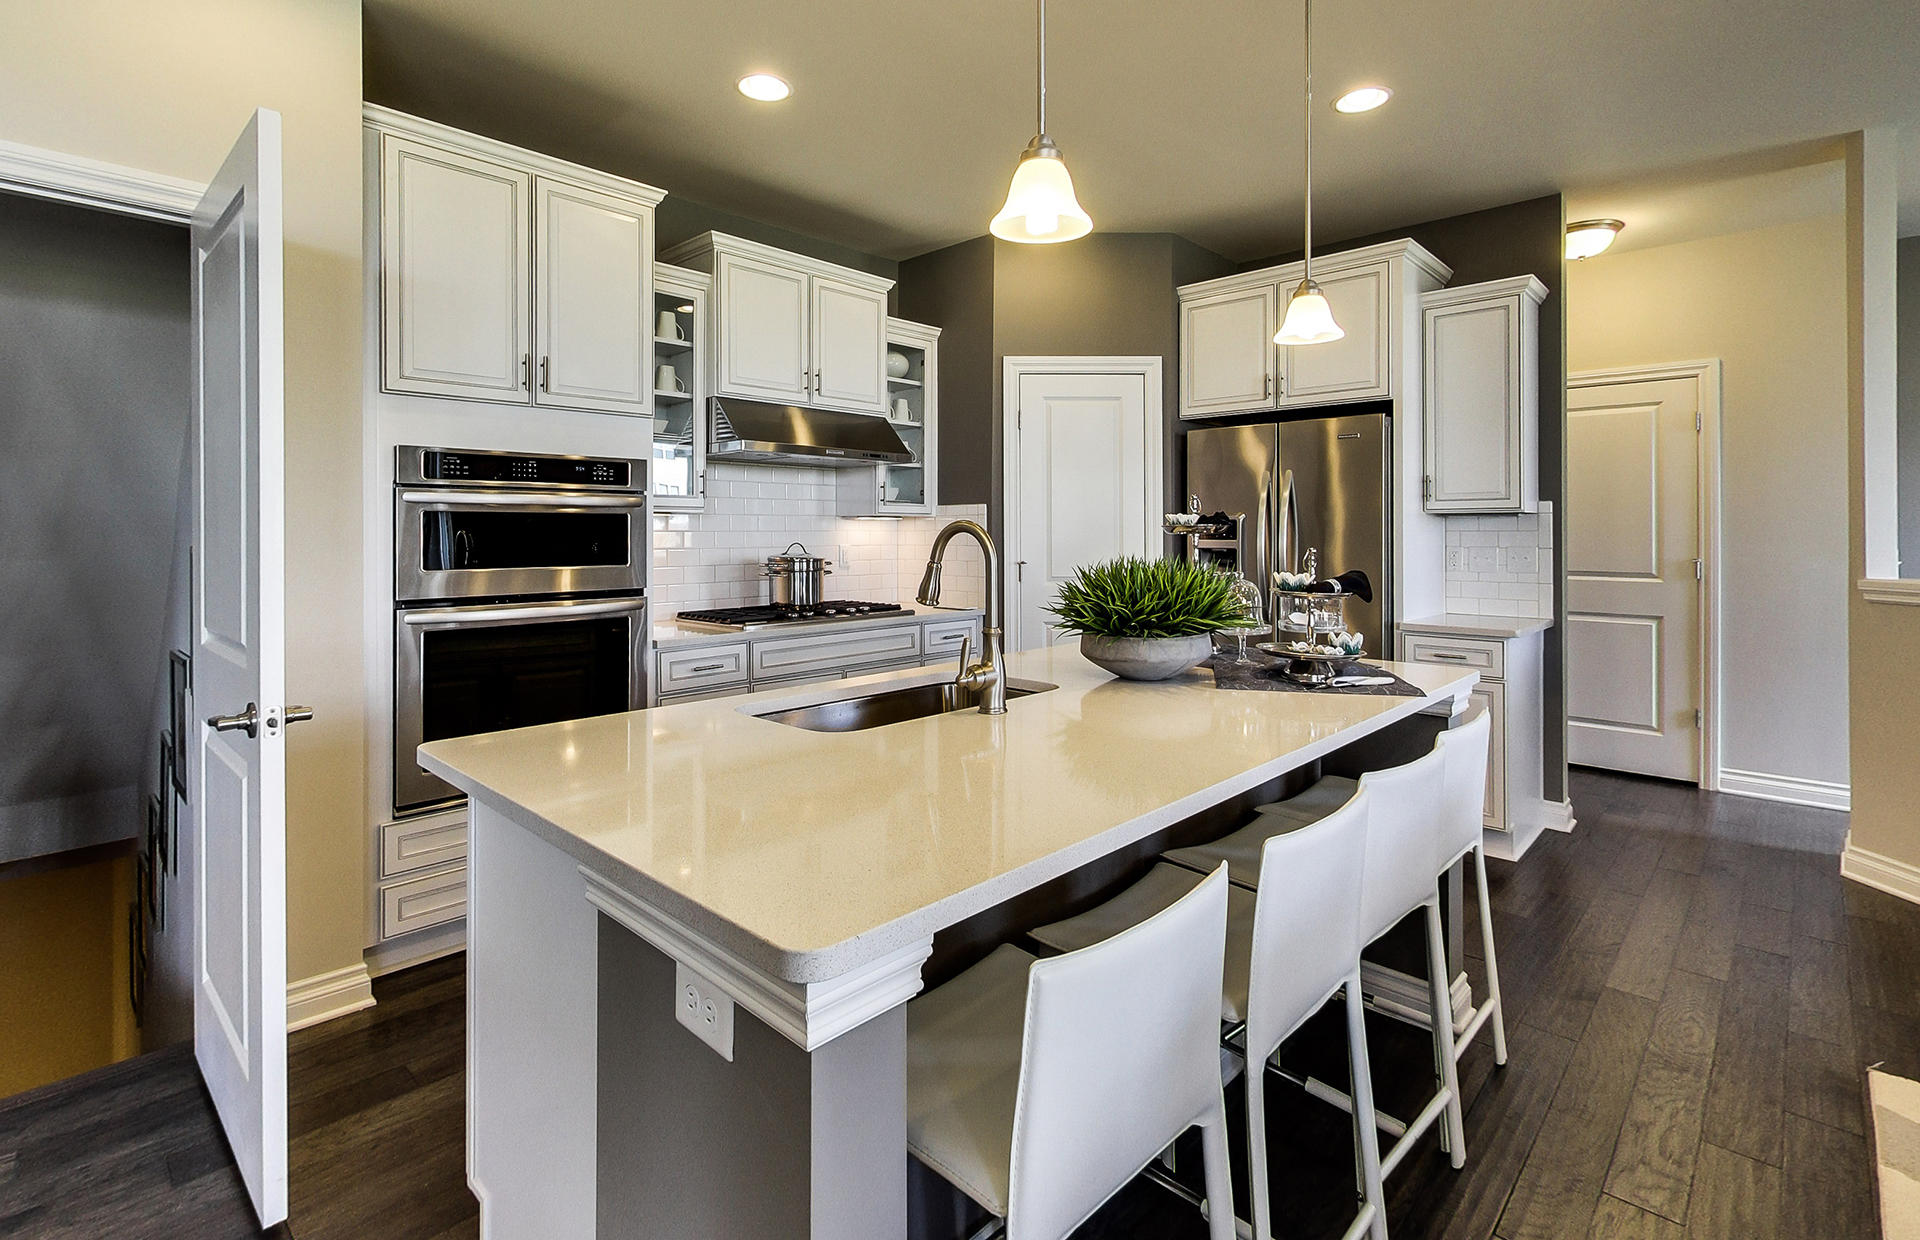 Estates at Hutsfield by Pulte Homes image 0